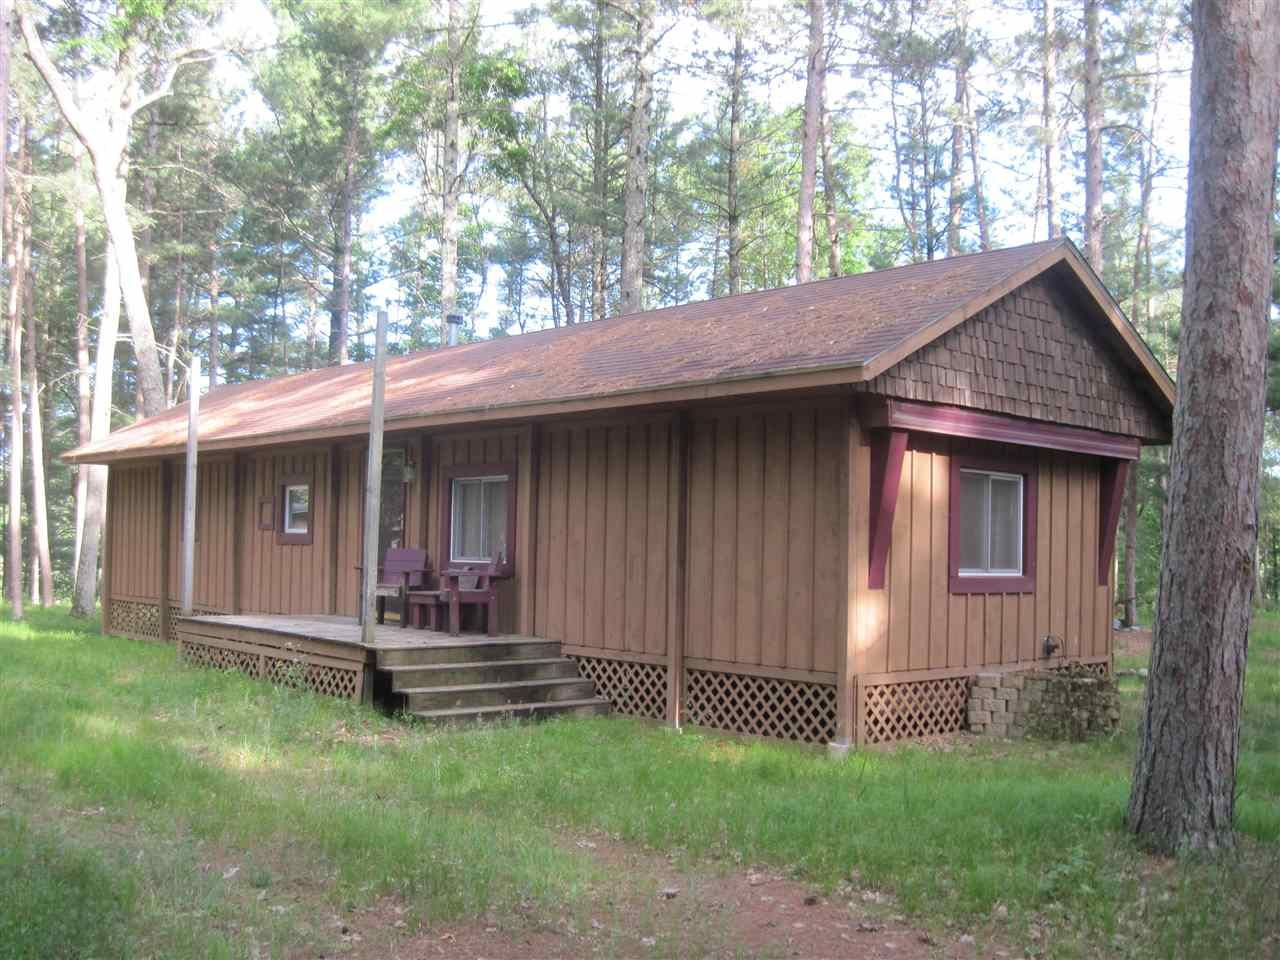 984 E Trout Valley Rd, Friendship, WI 53934 - #: 1911307